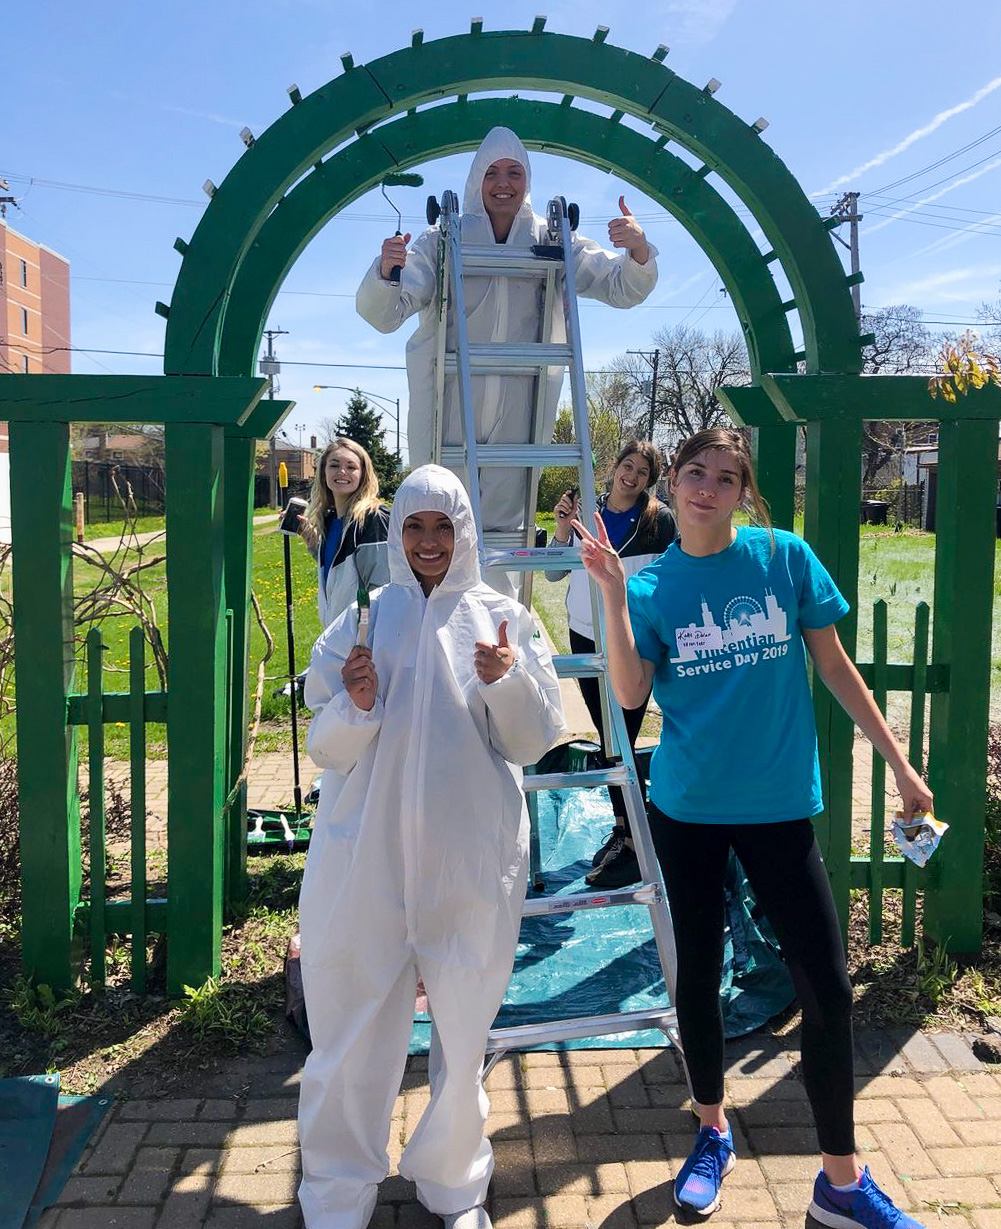 Mattie Norris, Mackenzie Savage, Brittany Maxwell, Natalie Hayward and Katie Dolan, players on the women's Volleyball team, painted exterior fencing at Neighbor Space – Chicago. (DePaul University Athletics)​